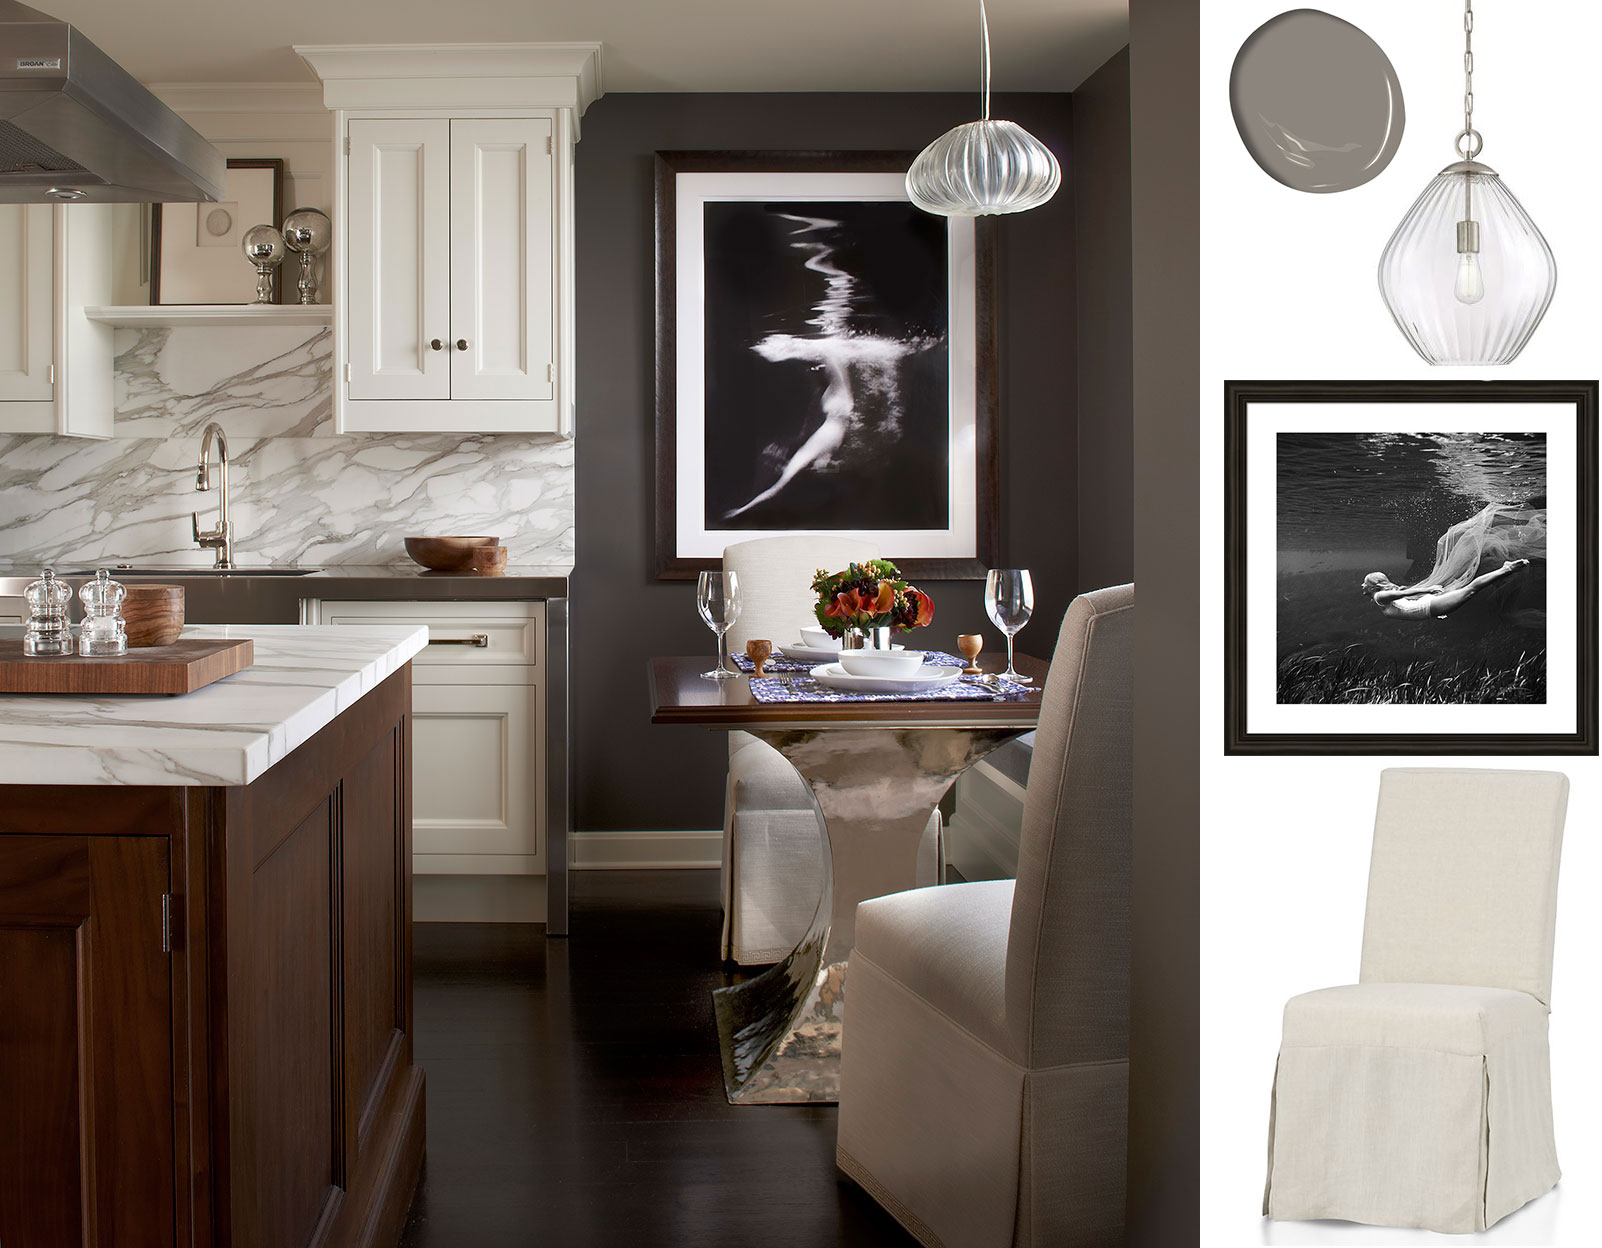 Luxury kitchens by clive christian interior design inspiration eva - The Image Above Is A Kitchen Design By Frank Ponterio See The Use Of A Seductively Darker Paint Colour To Envelope The Small Dining Area Just Steps Away